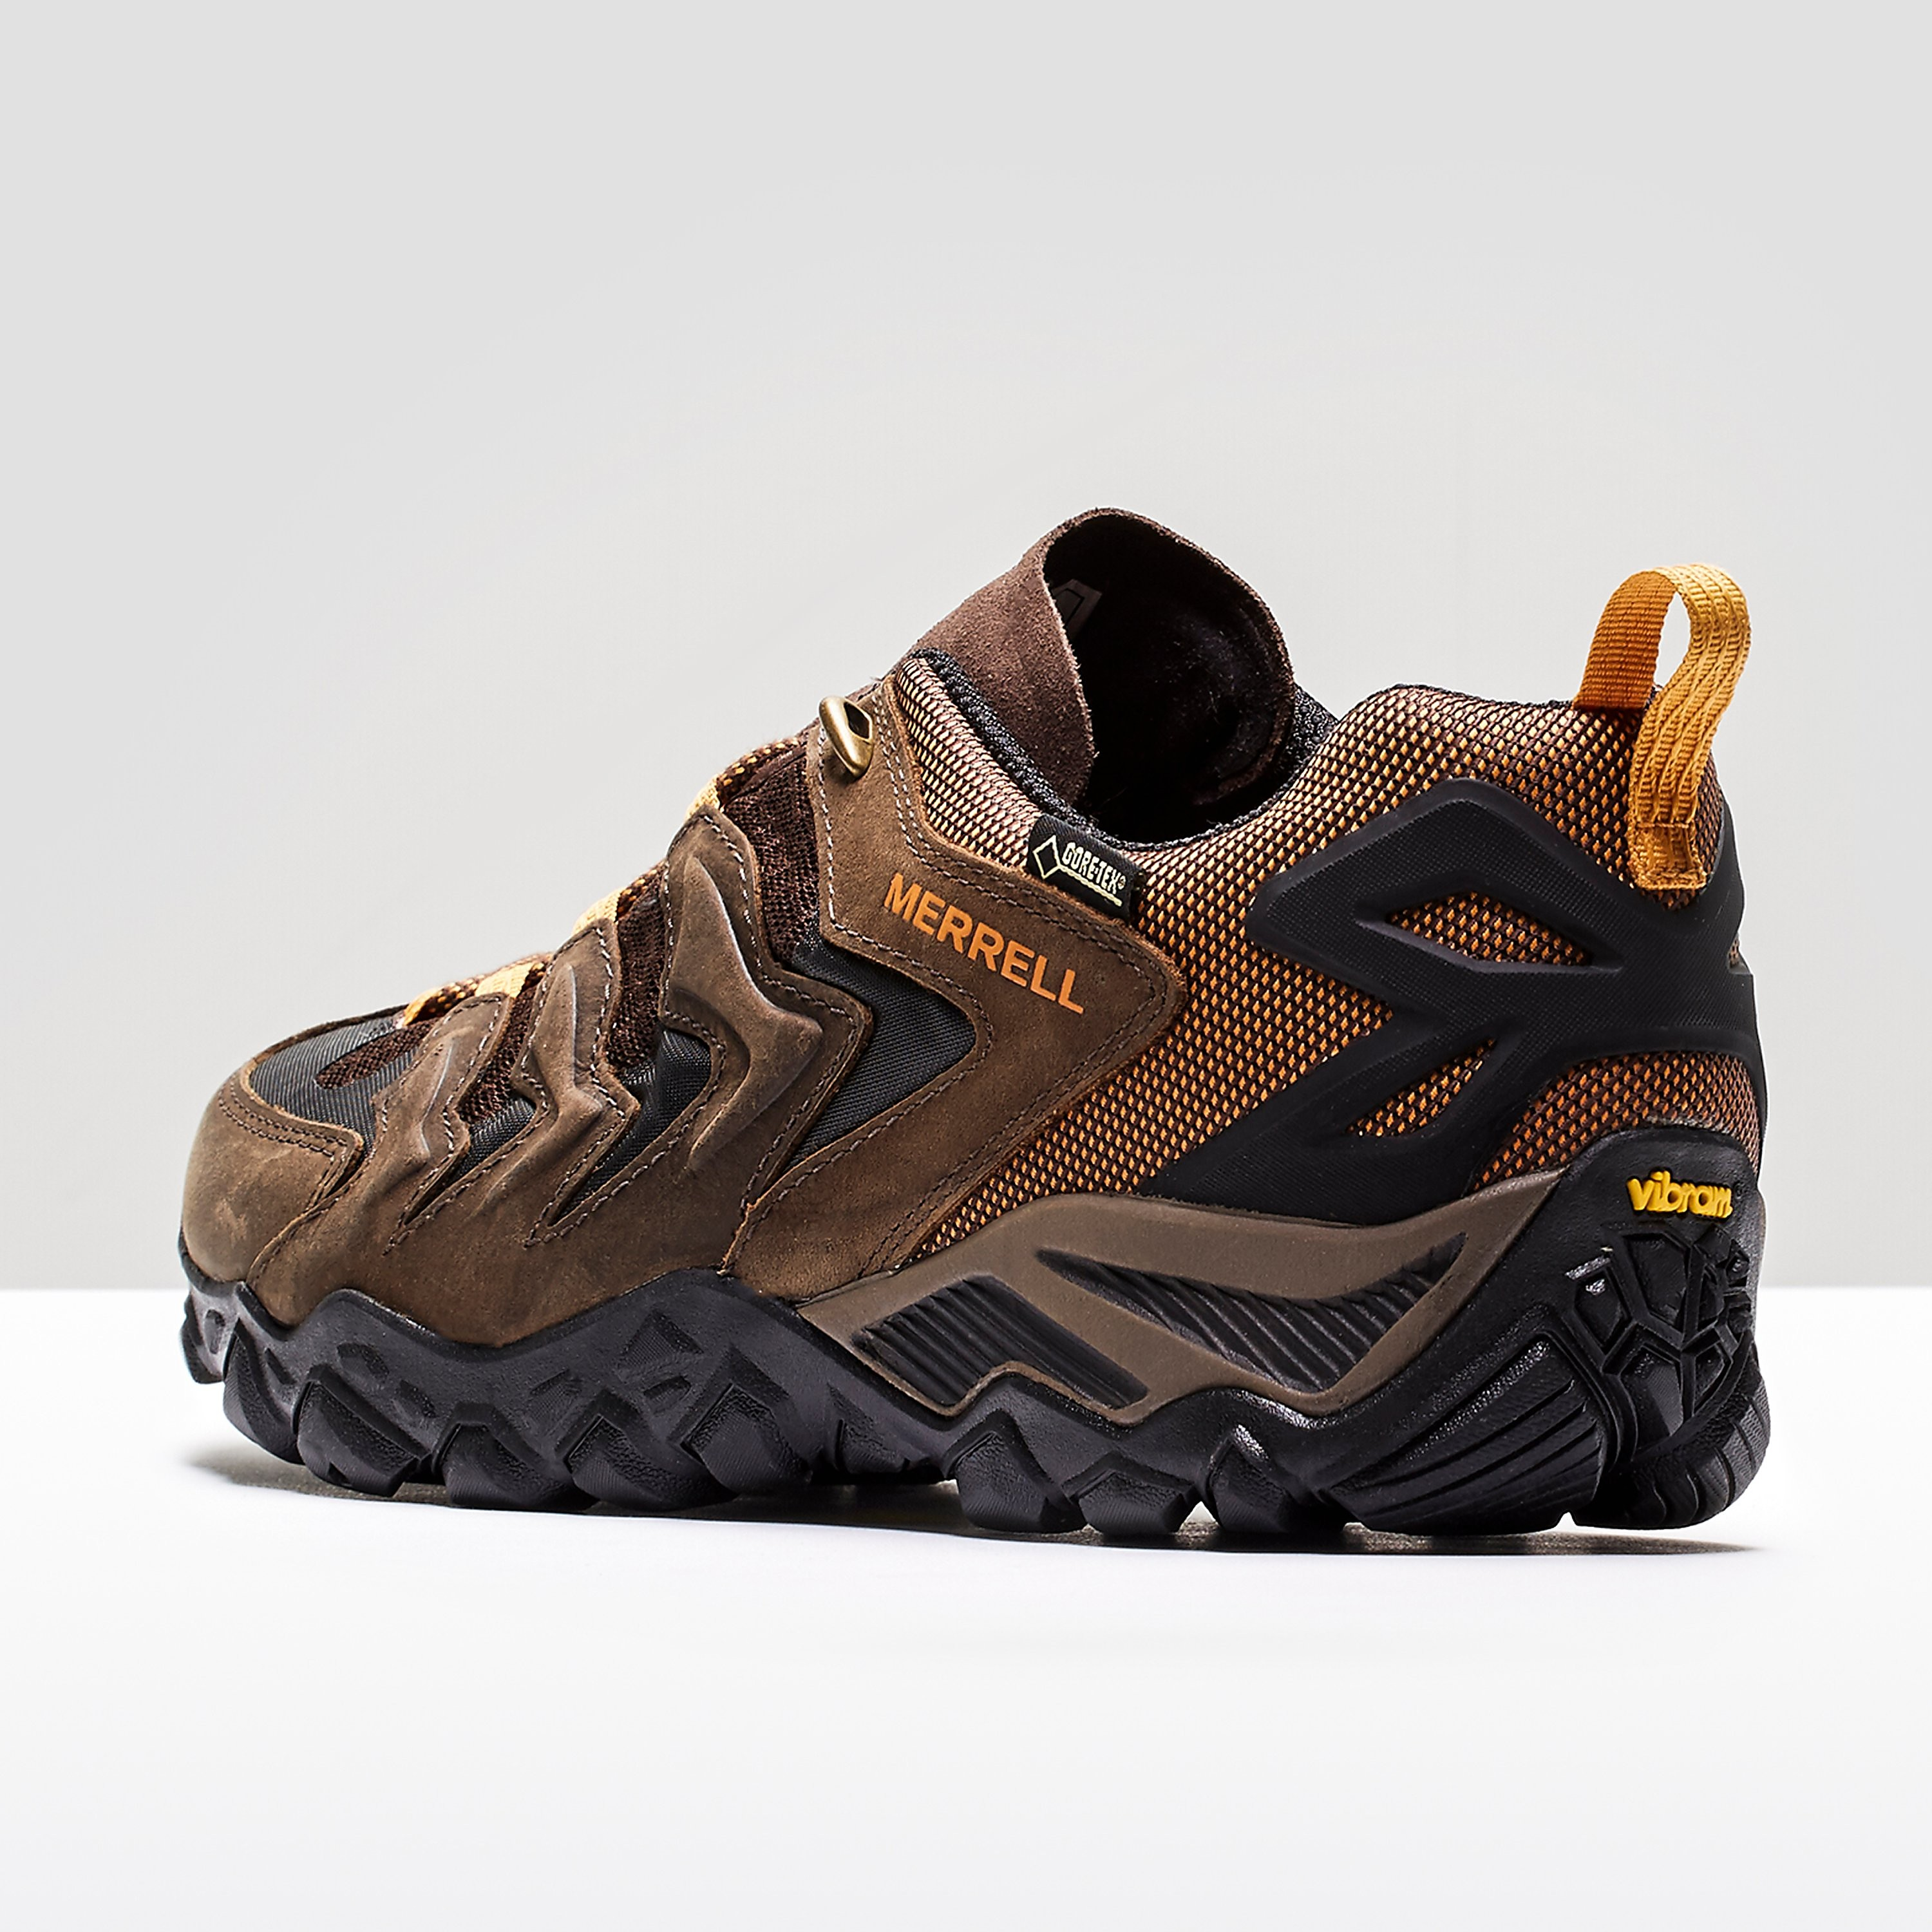 Merrell Chameleon Shift Ventilator Gore-Tex Men's Hiking Shoe